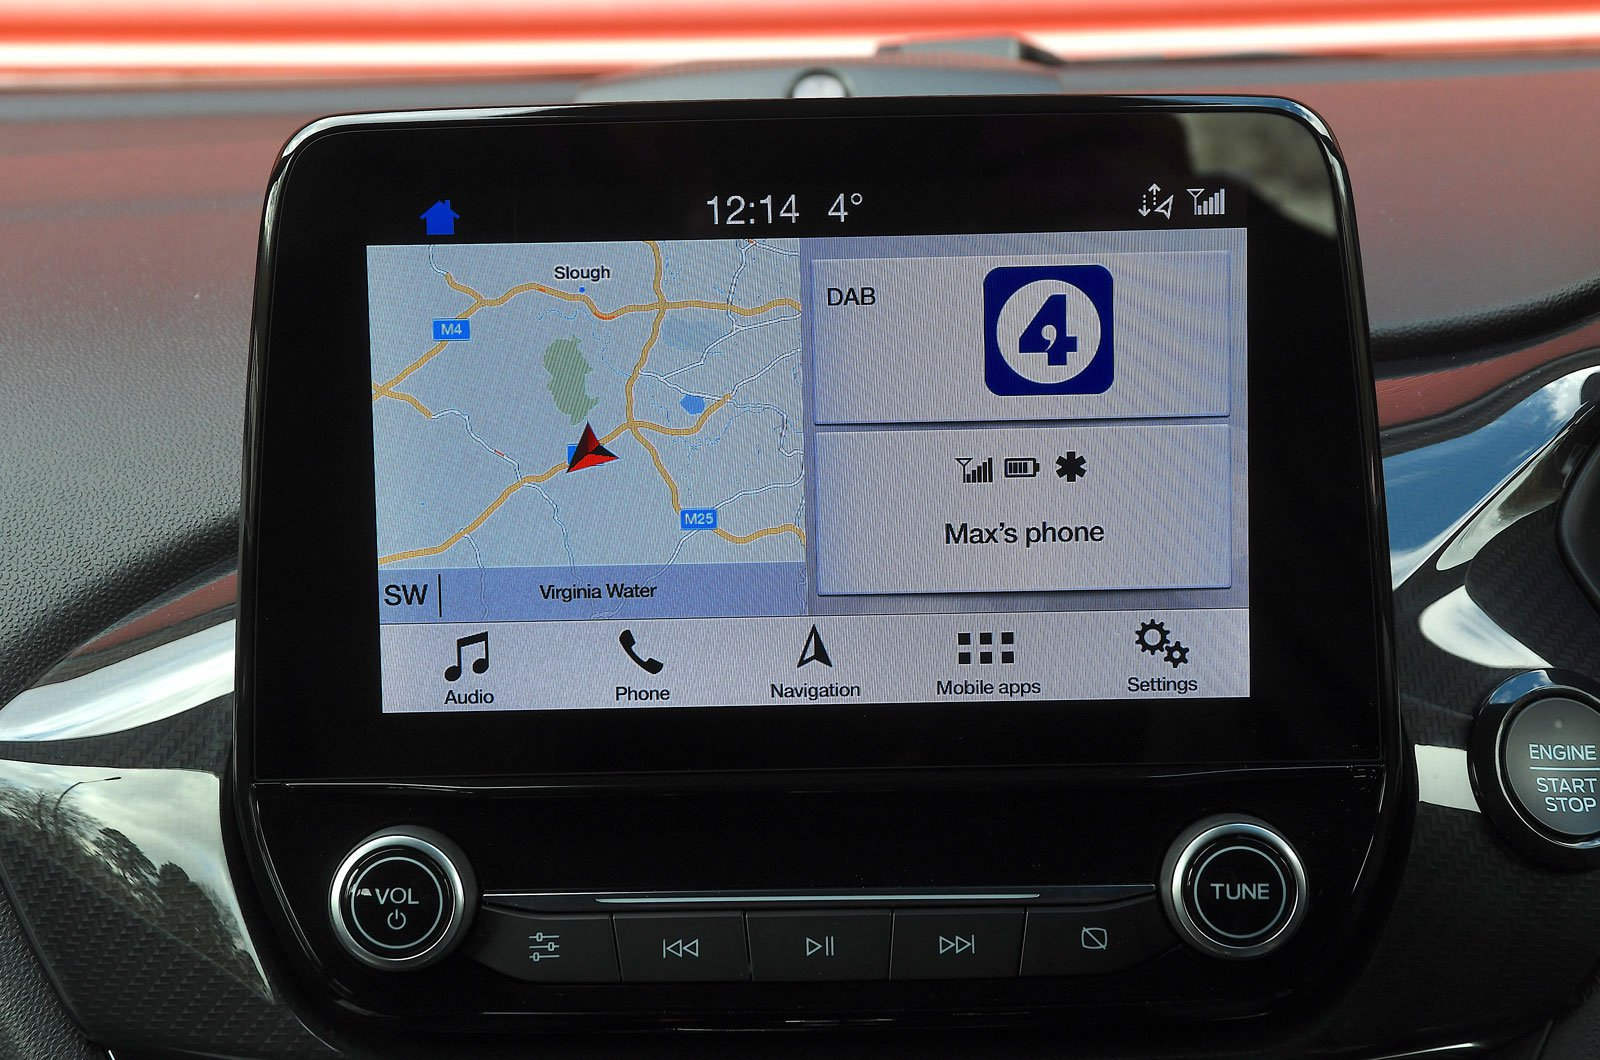 Ford infotainment screen